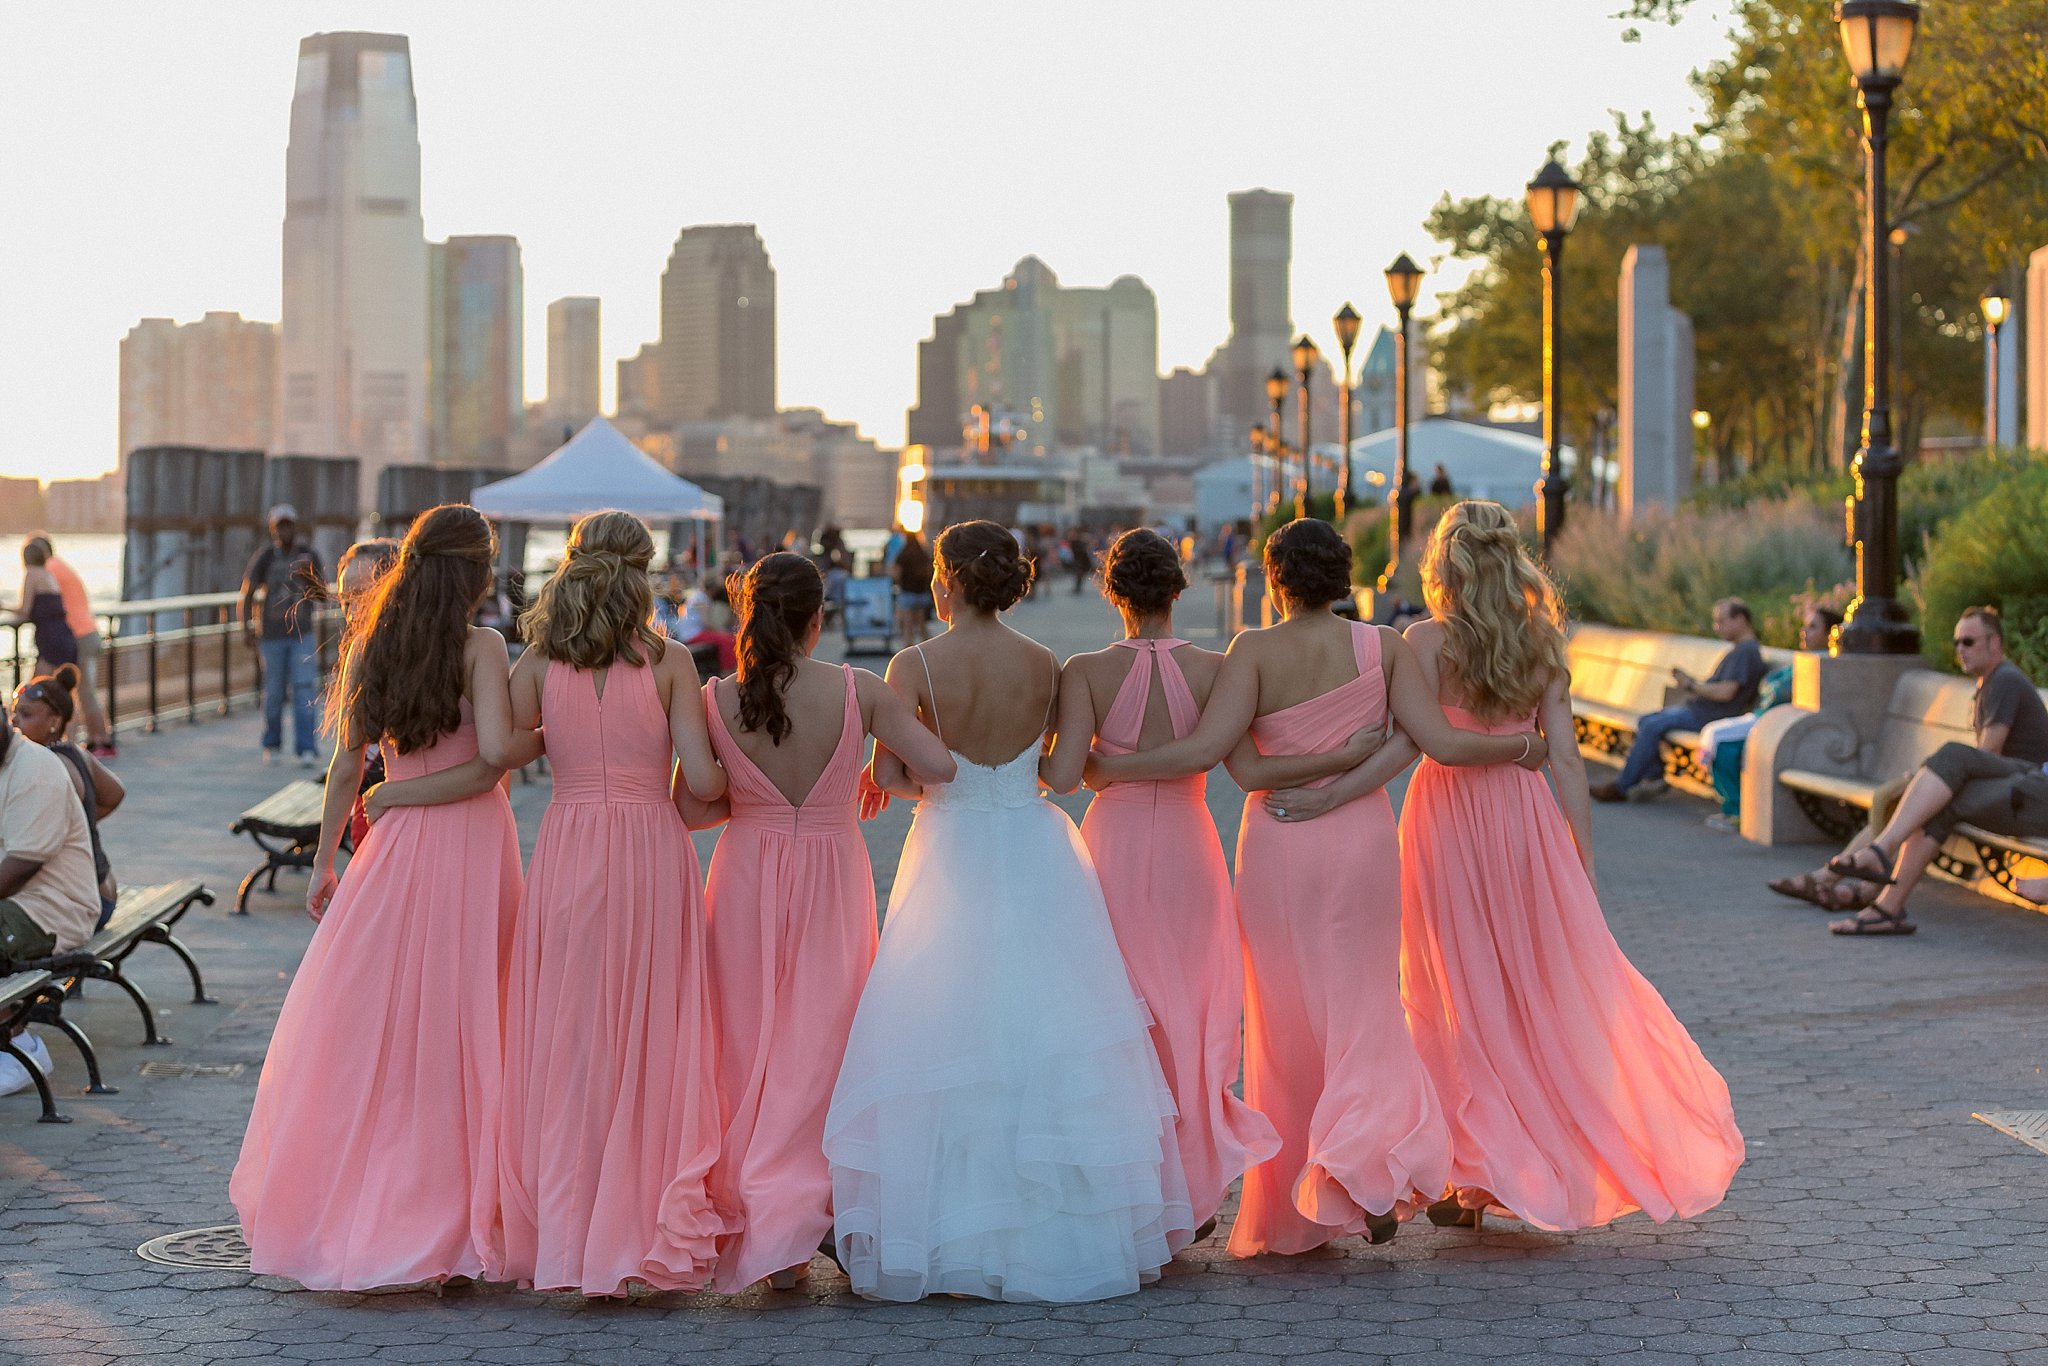 Bride and her bridesmaids session, , photographed by Susan Shek Wedding Photography in New York City, NY.